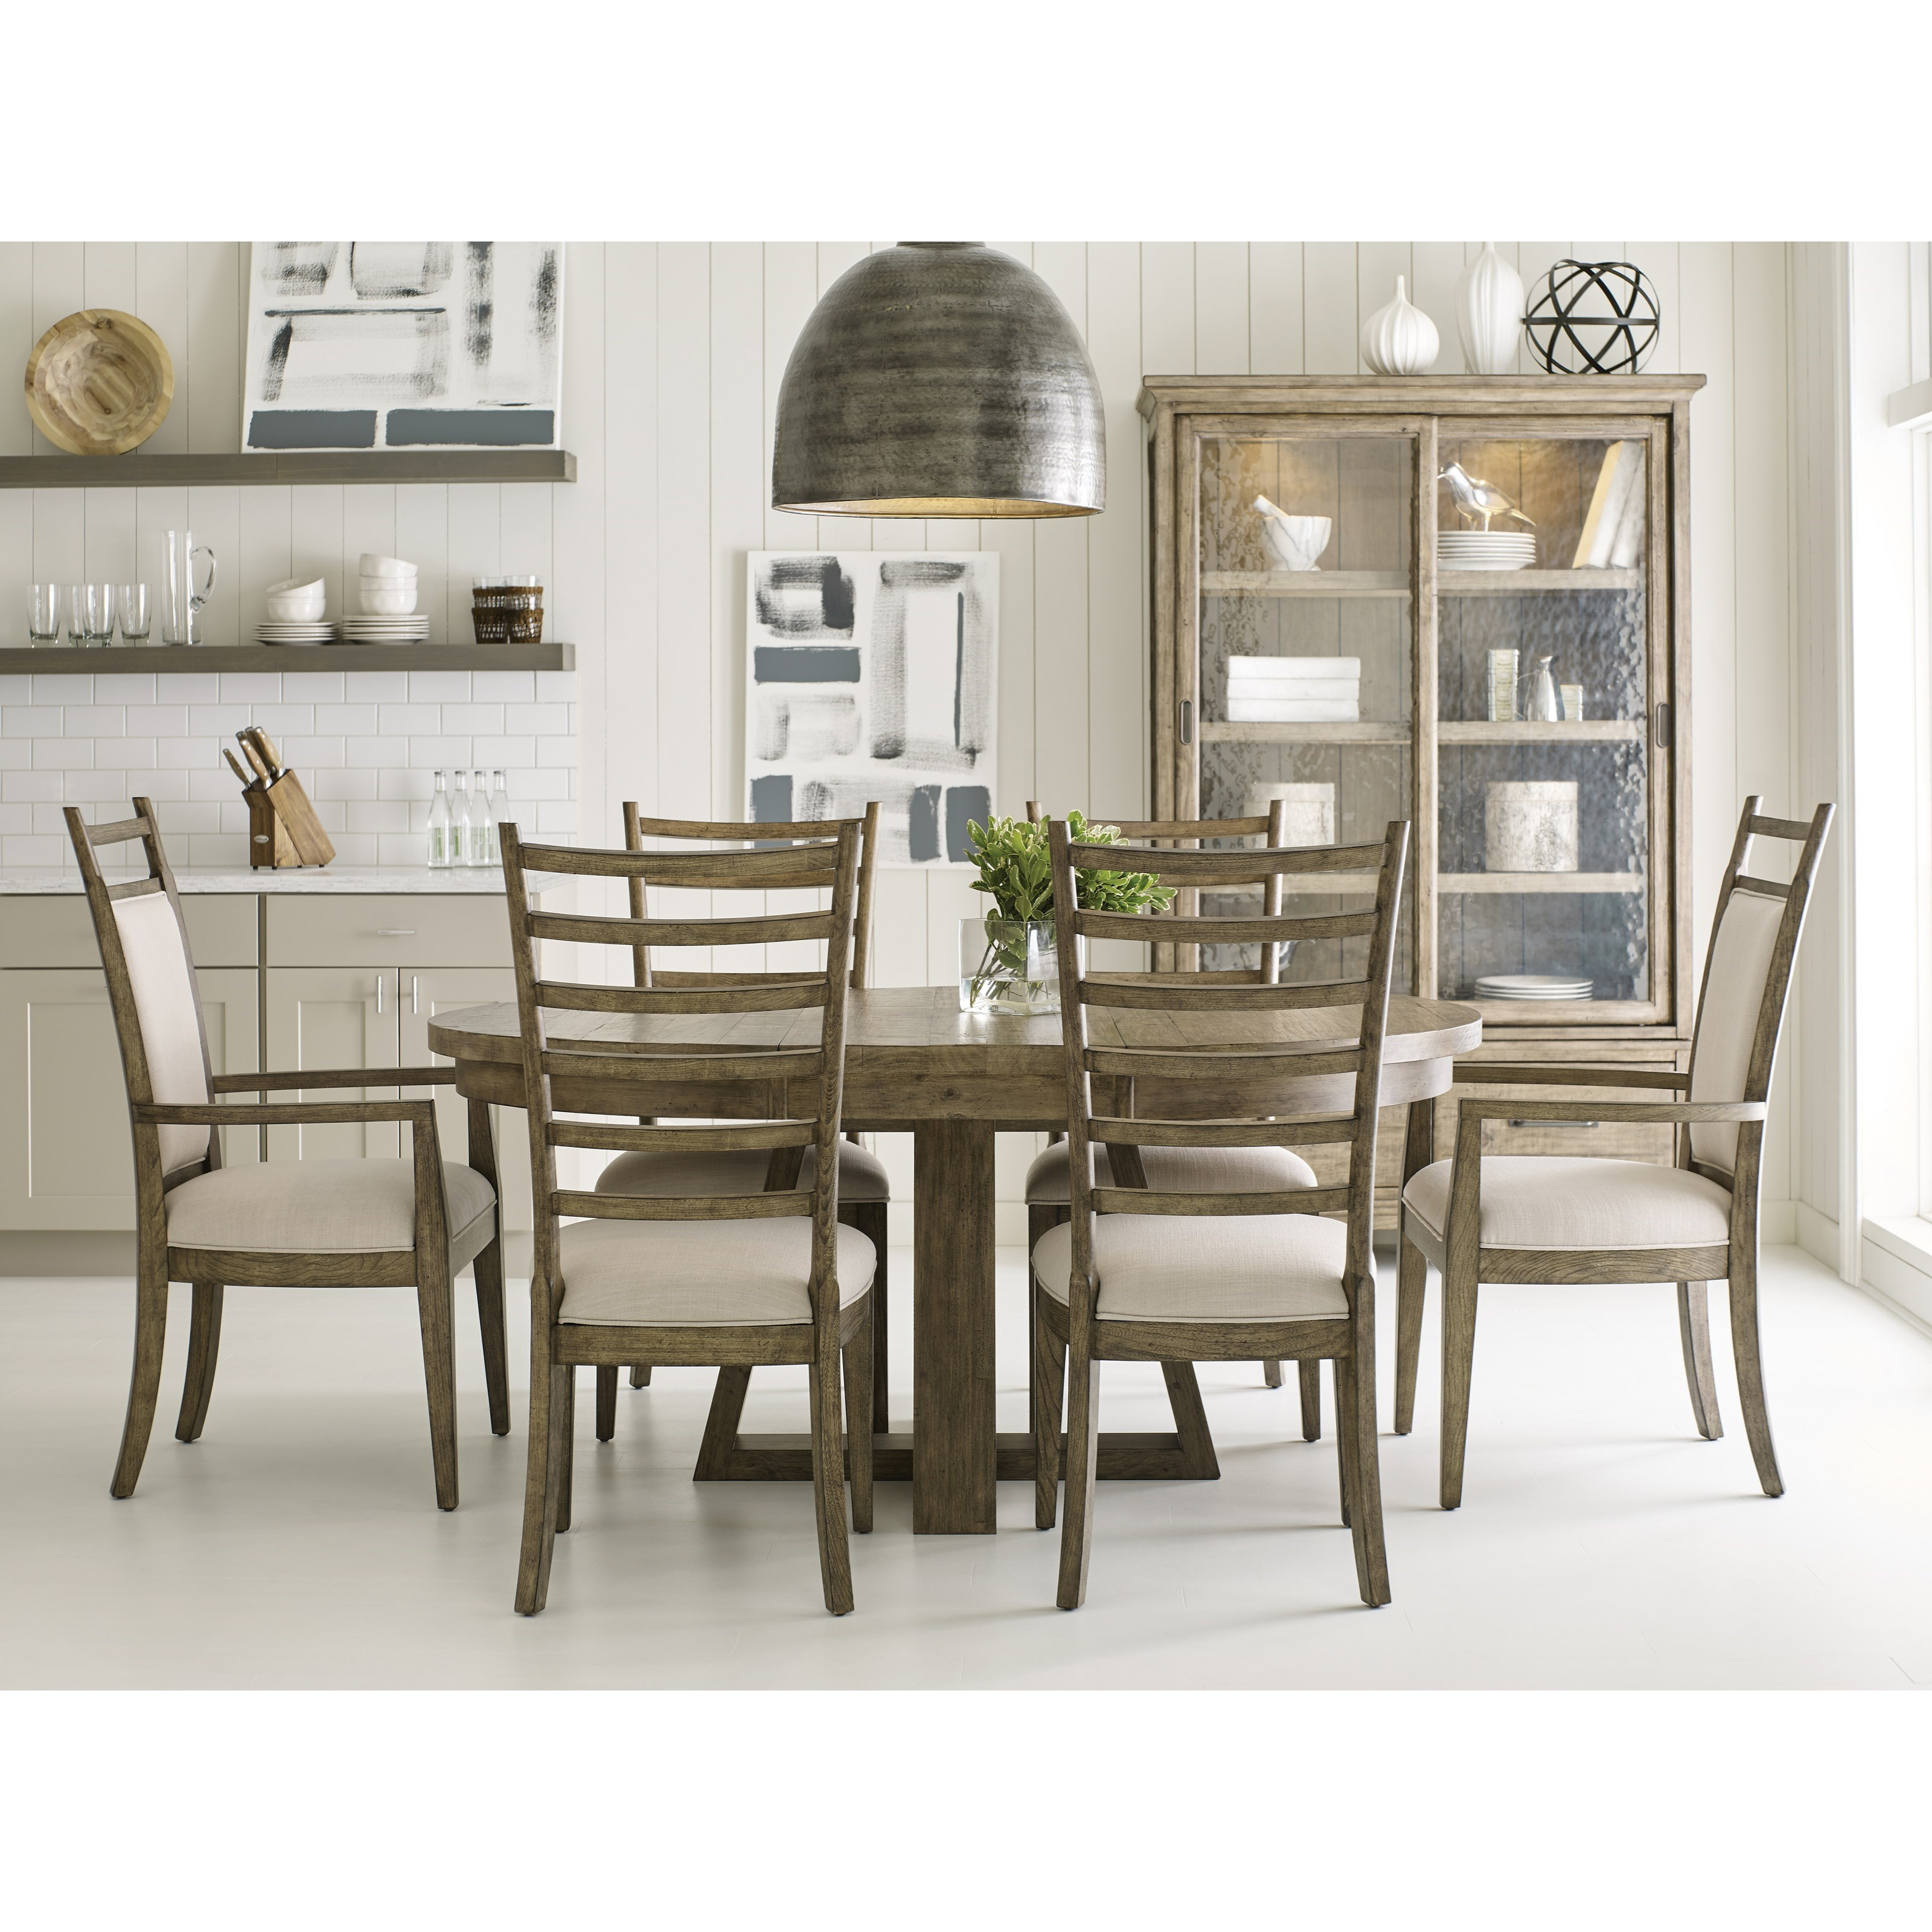 Plank Road 7 Pc Dining Set at Stoney Creek Furniture